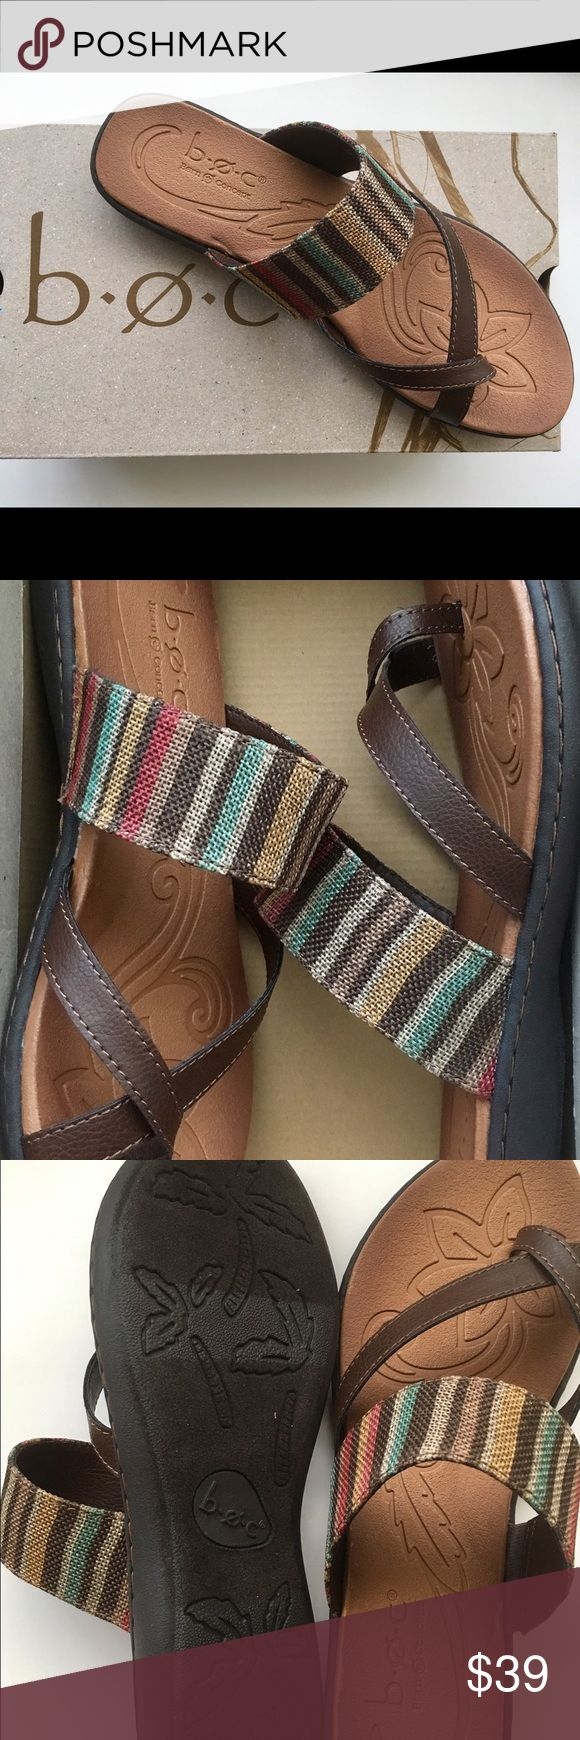 BOC things new in box brown striped top BOC things new in box brown striped top  Brand new w box . Per box they are size 10, but fit like size 9.5 most likely All man made materials. Soft foot bed . BOC- Born Concepts brand . BOC Shoes Sandals